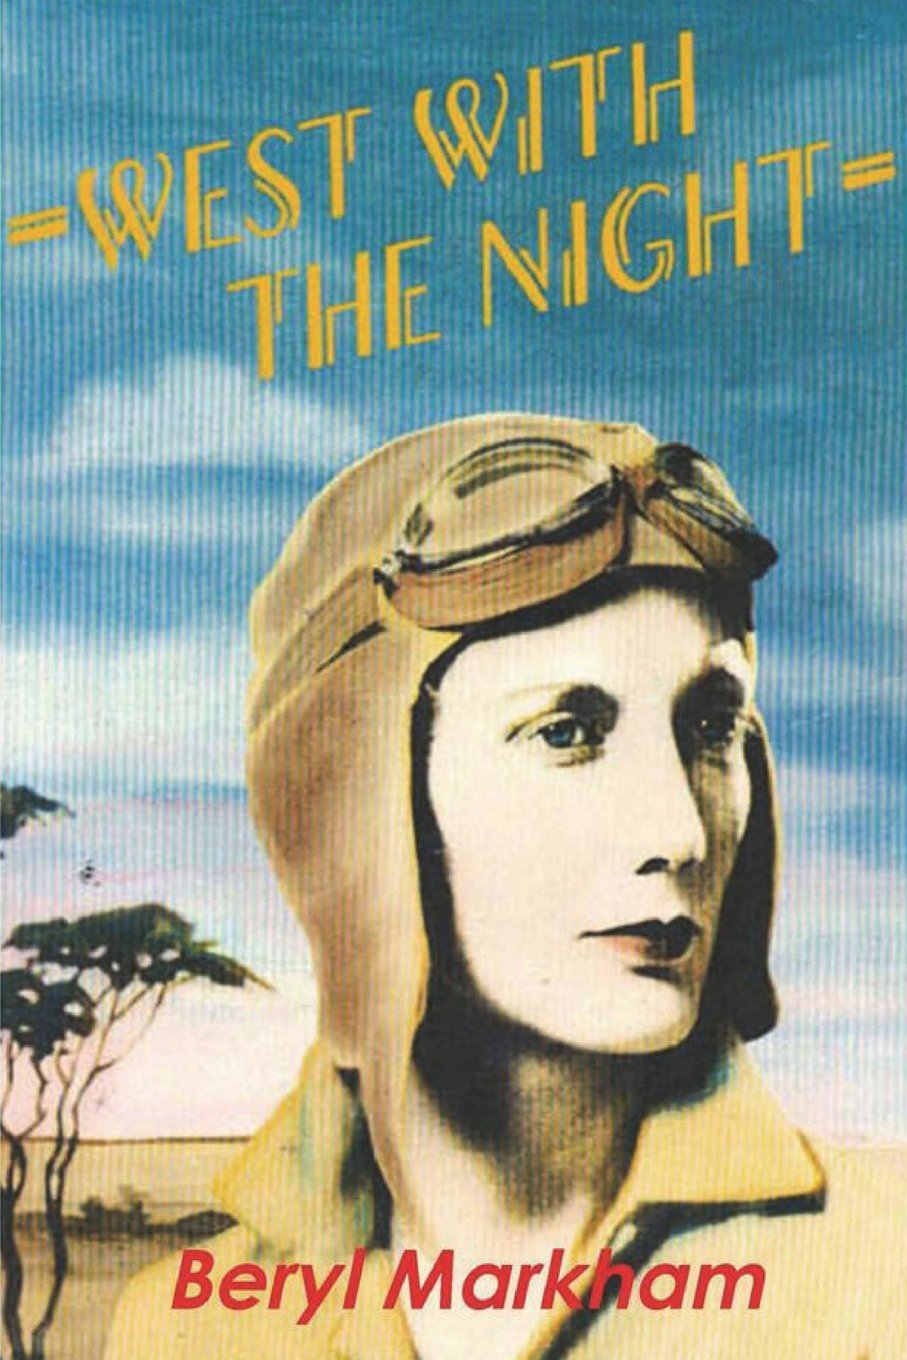 Inspiring Memoirs - West With The Night by Beryl Markham